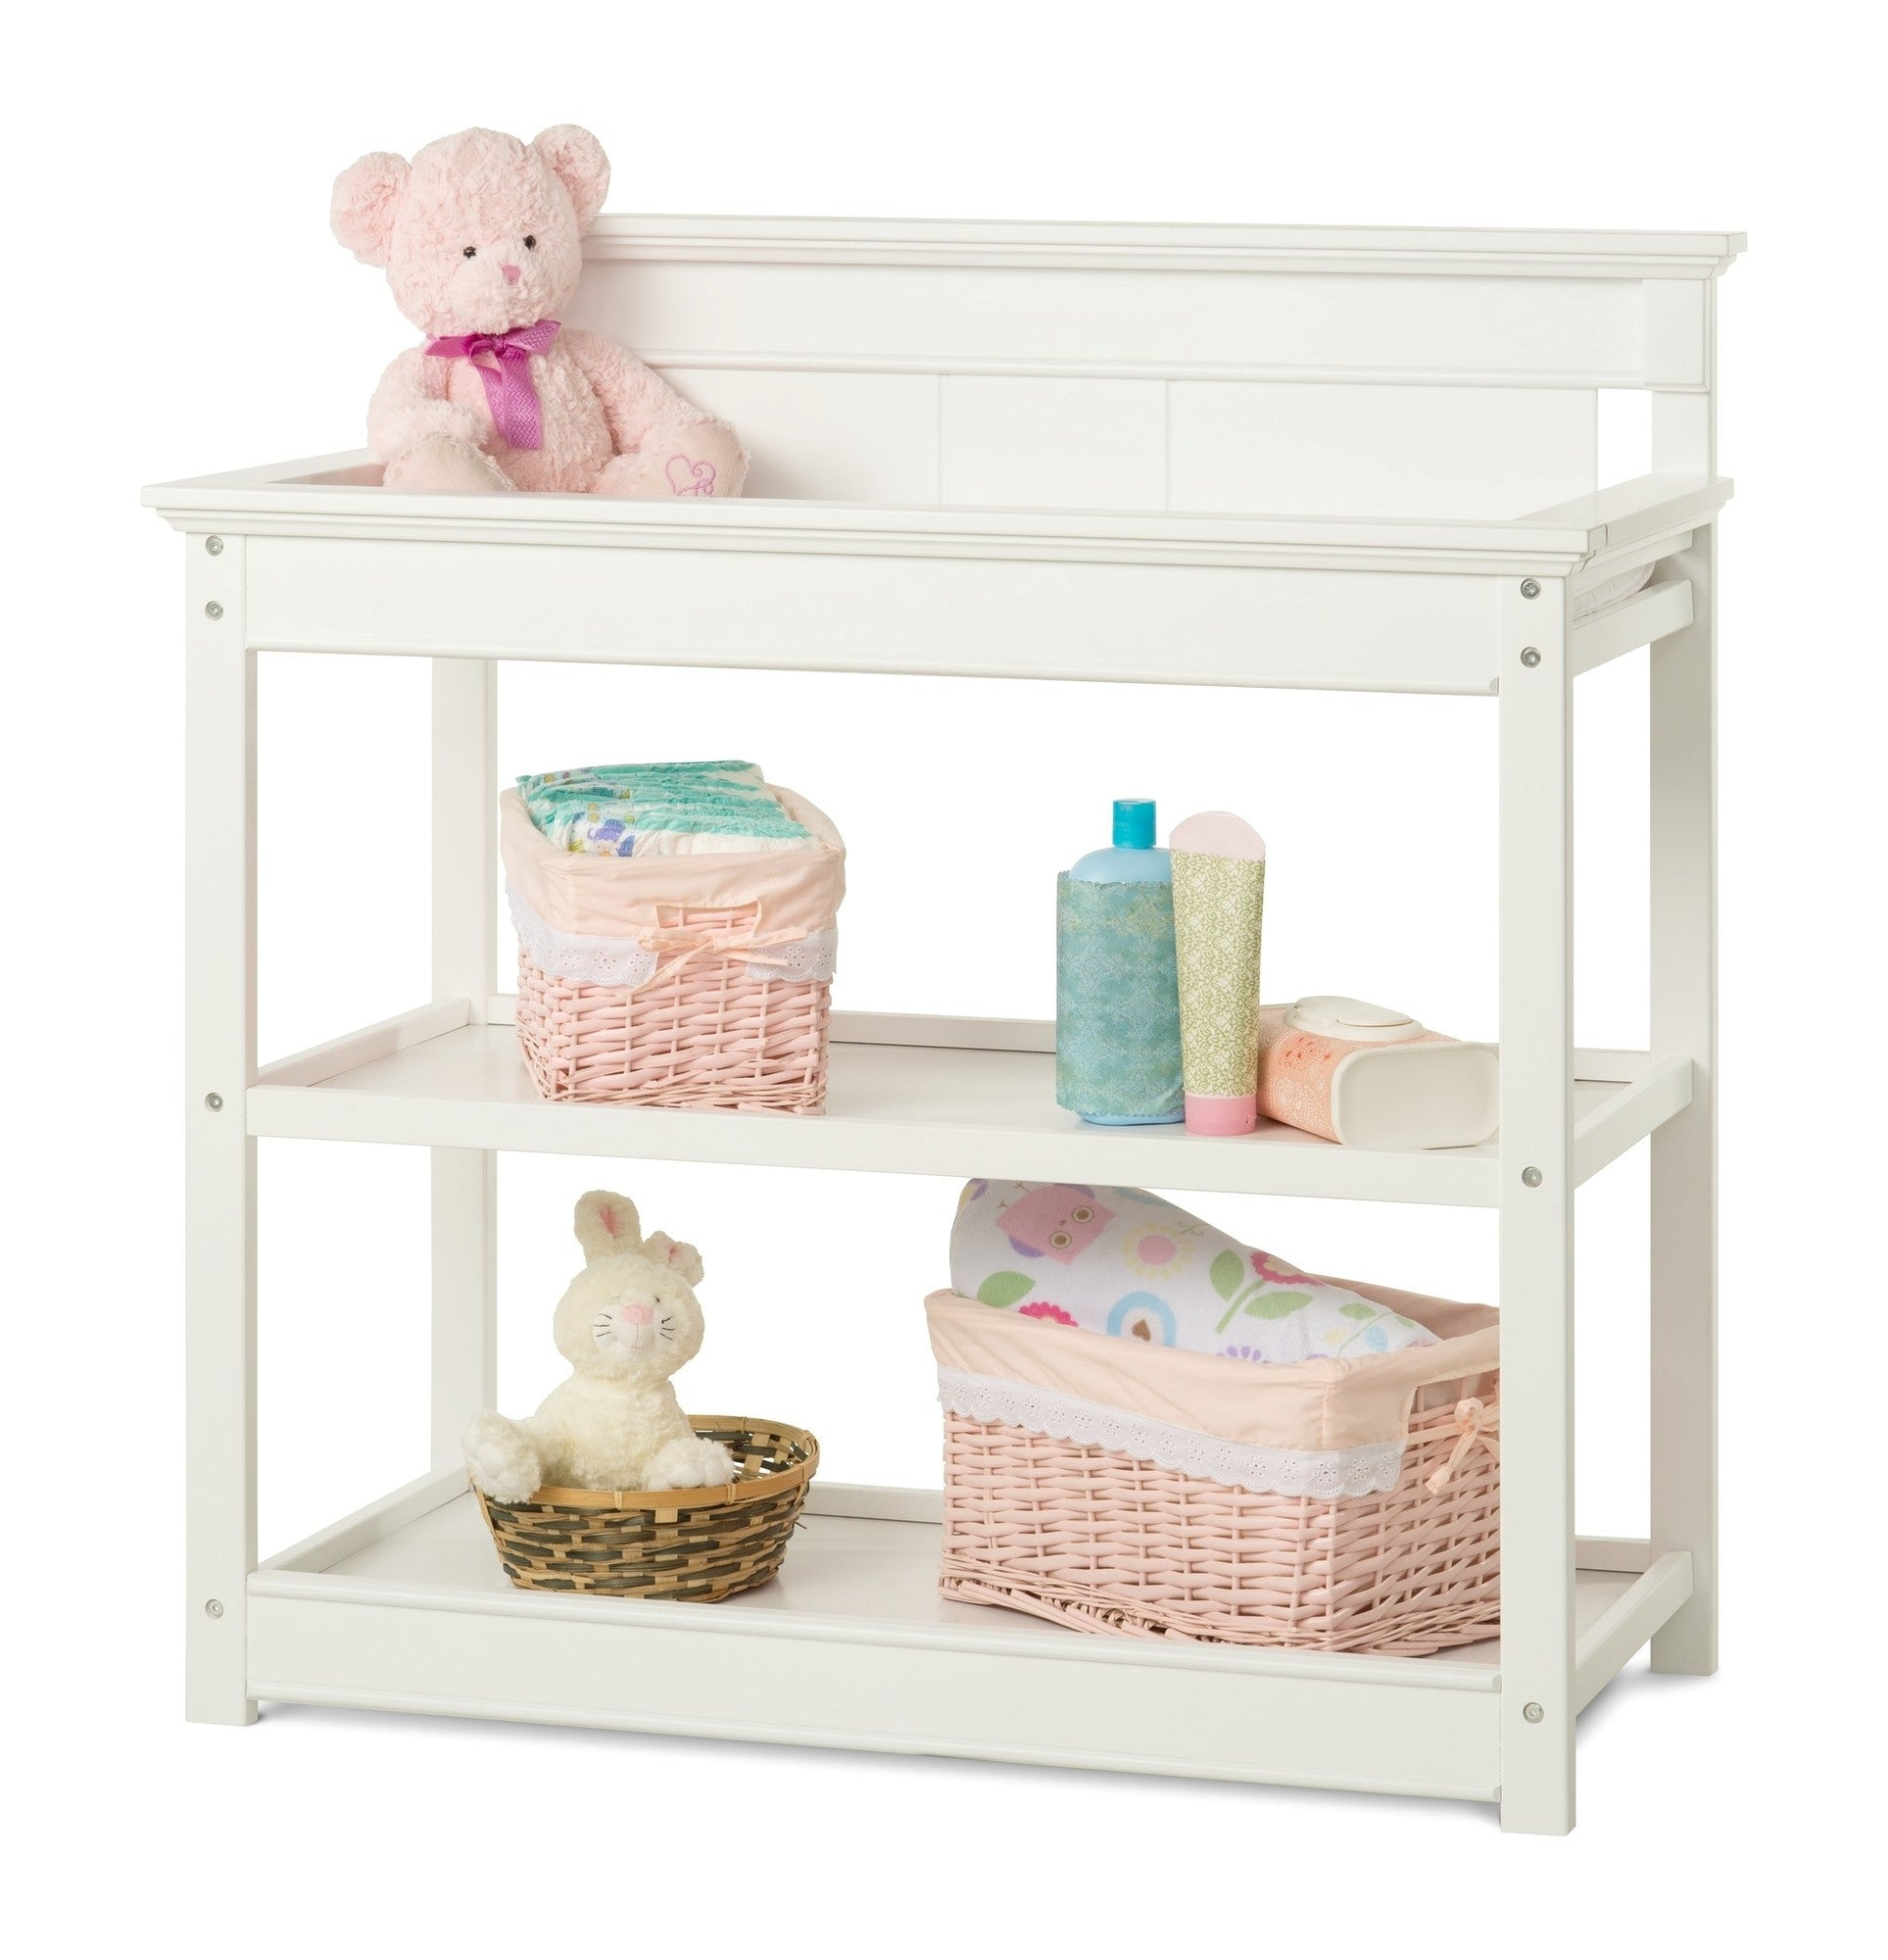 Child Craft Bradford Changing Table F02416   Matte White Child Craft  Nursery Furniture   Nurzery.